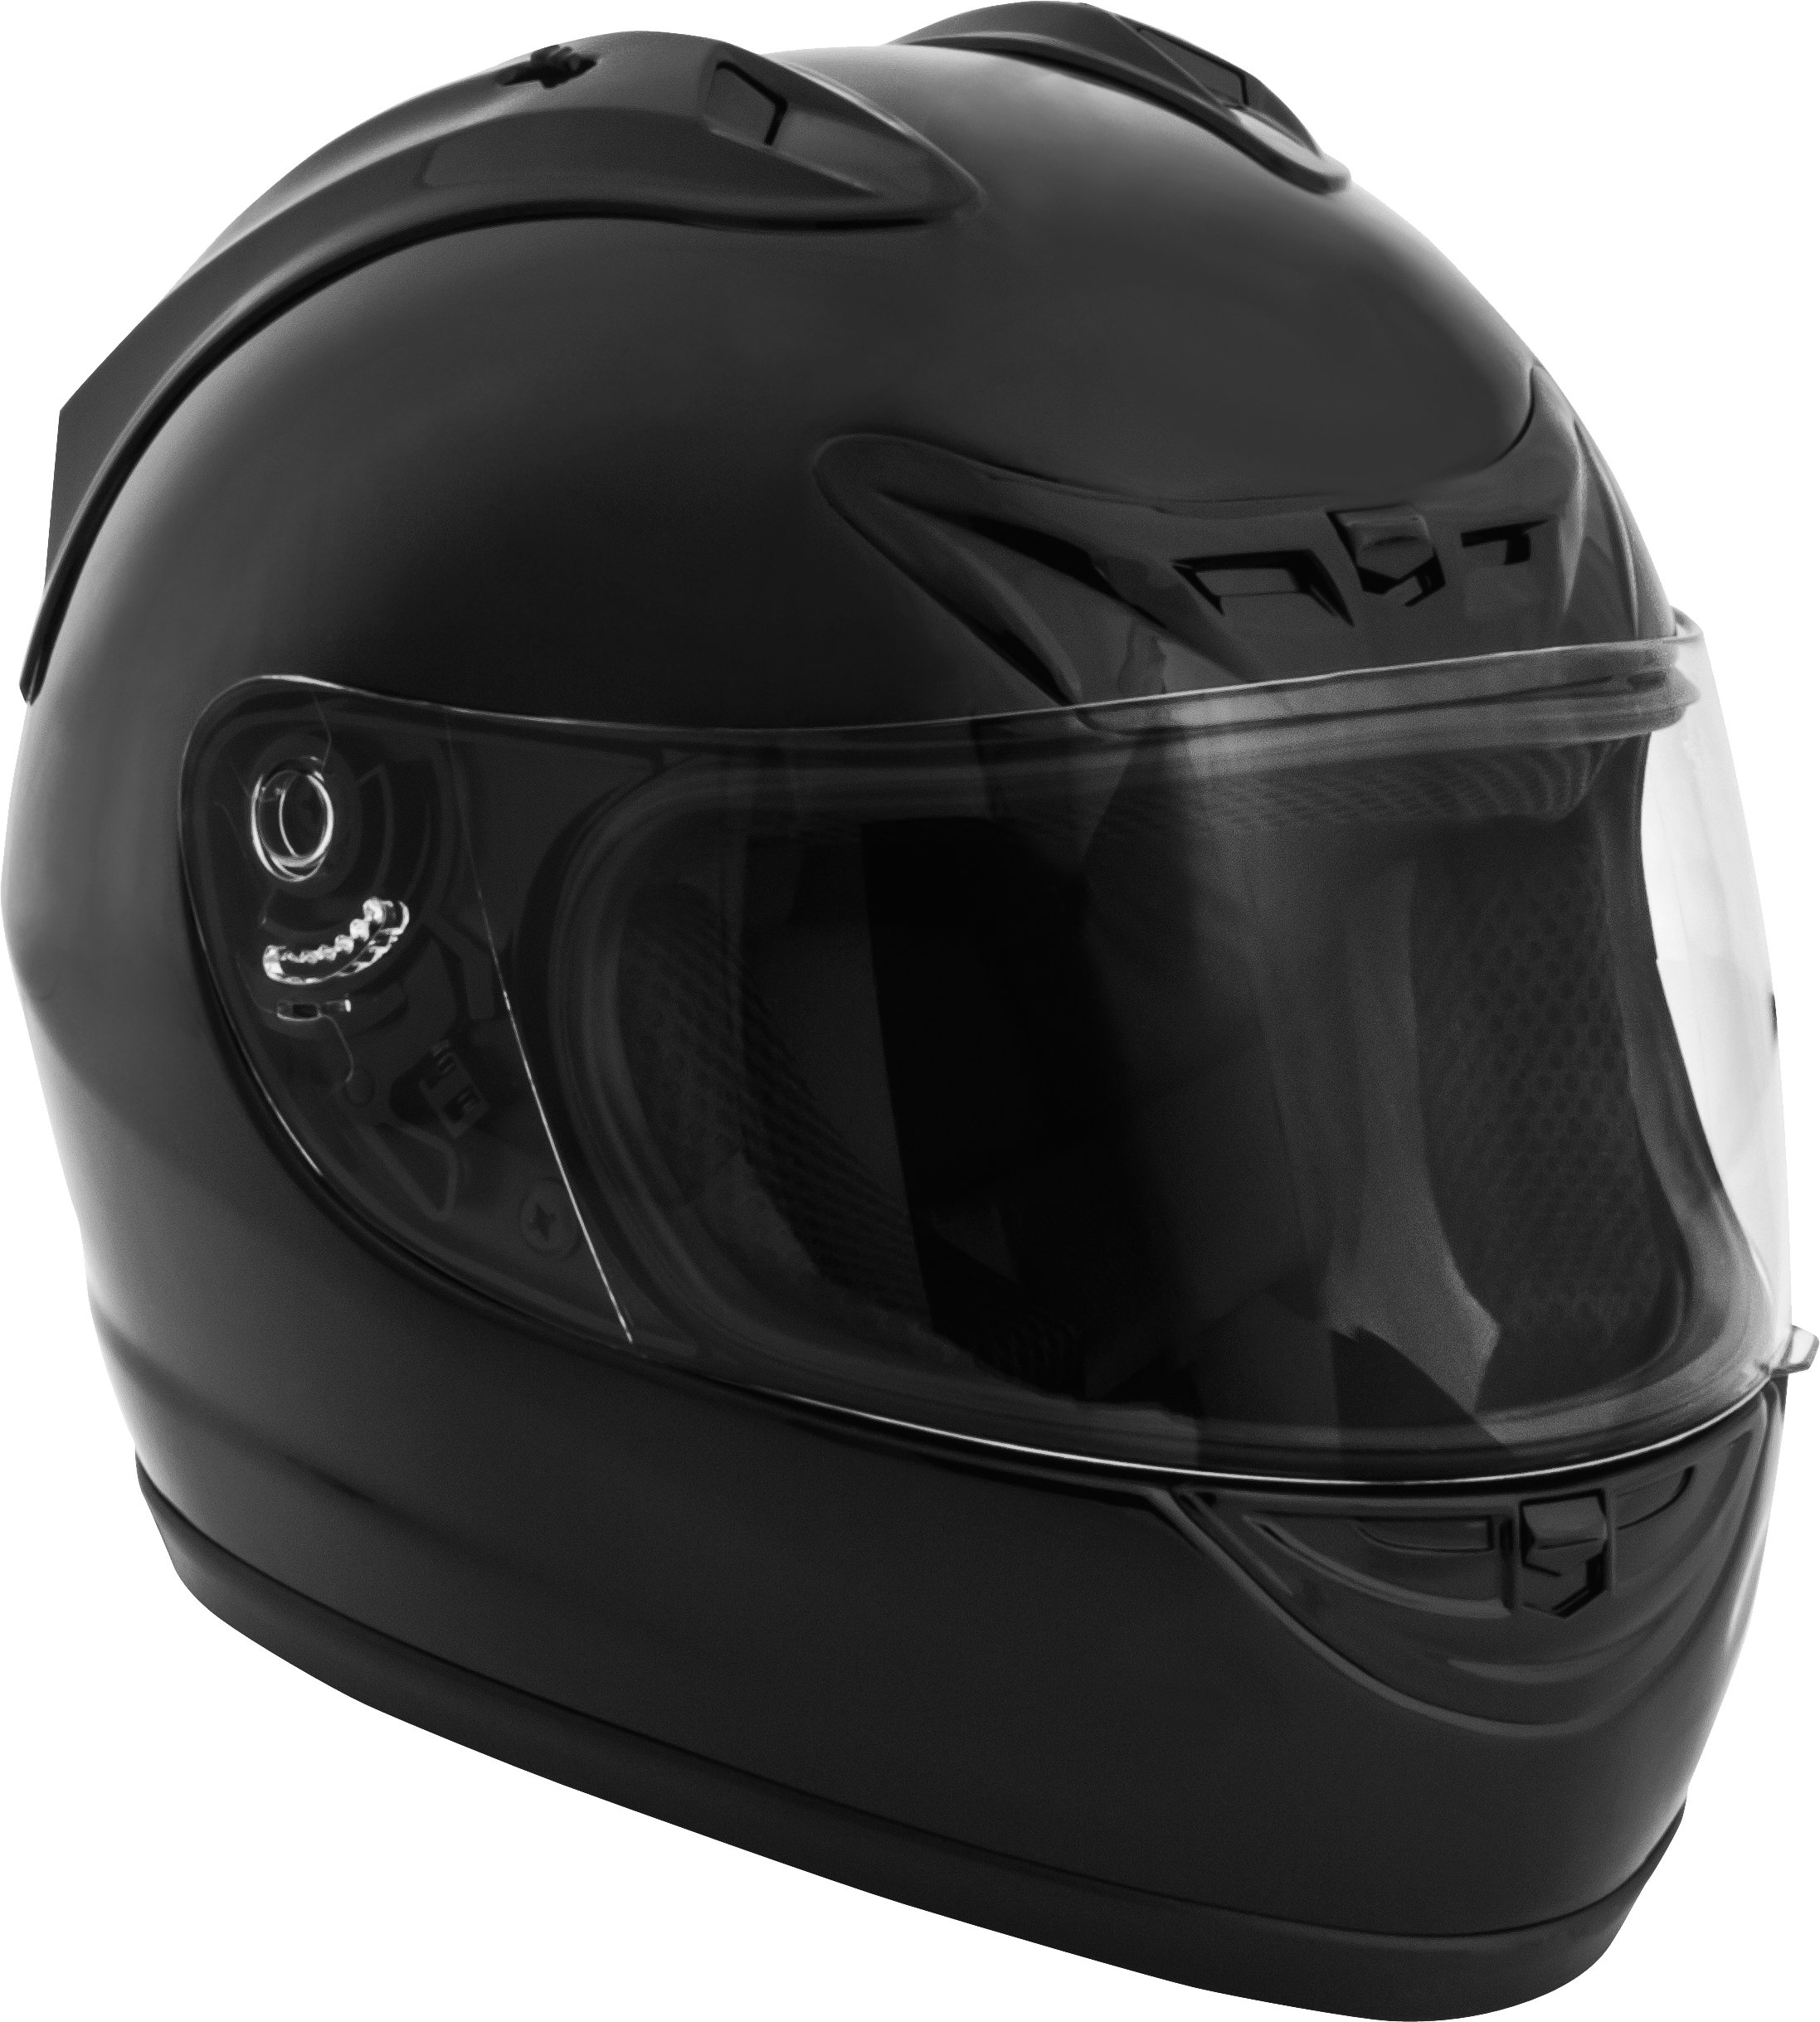 Fuel Helmets SH-FF0016 Full Face Helmet, Gloss Black, Large by Fuel Helmets